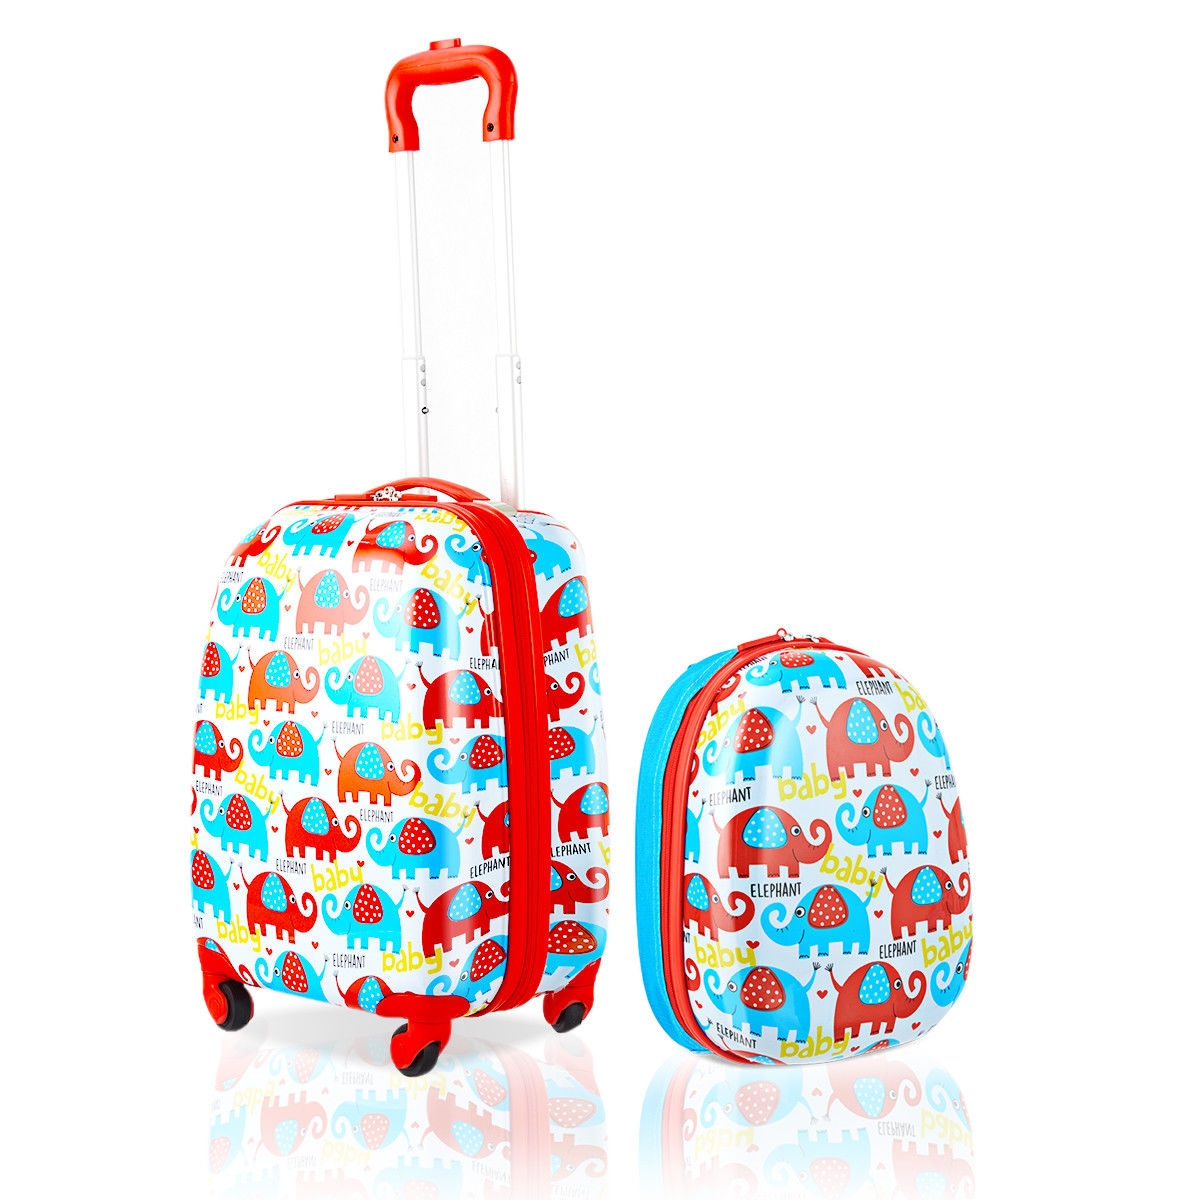 2 pcs Kids Luggage Set - 12 and 16 Inches